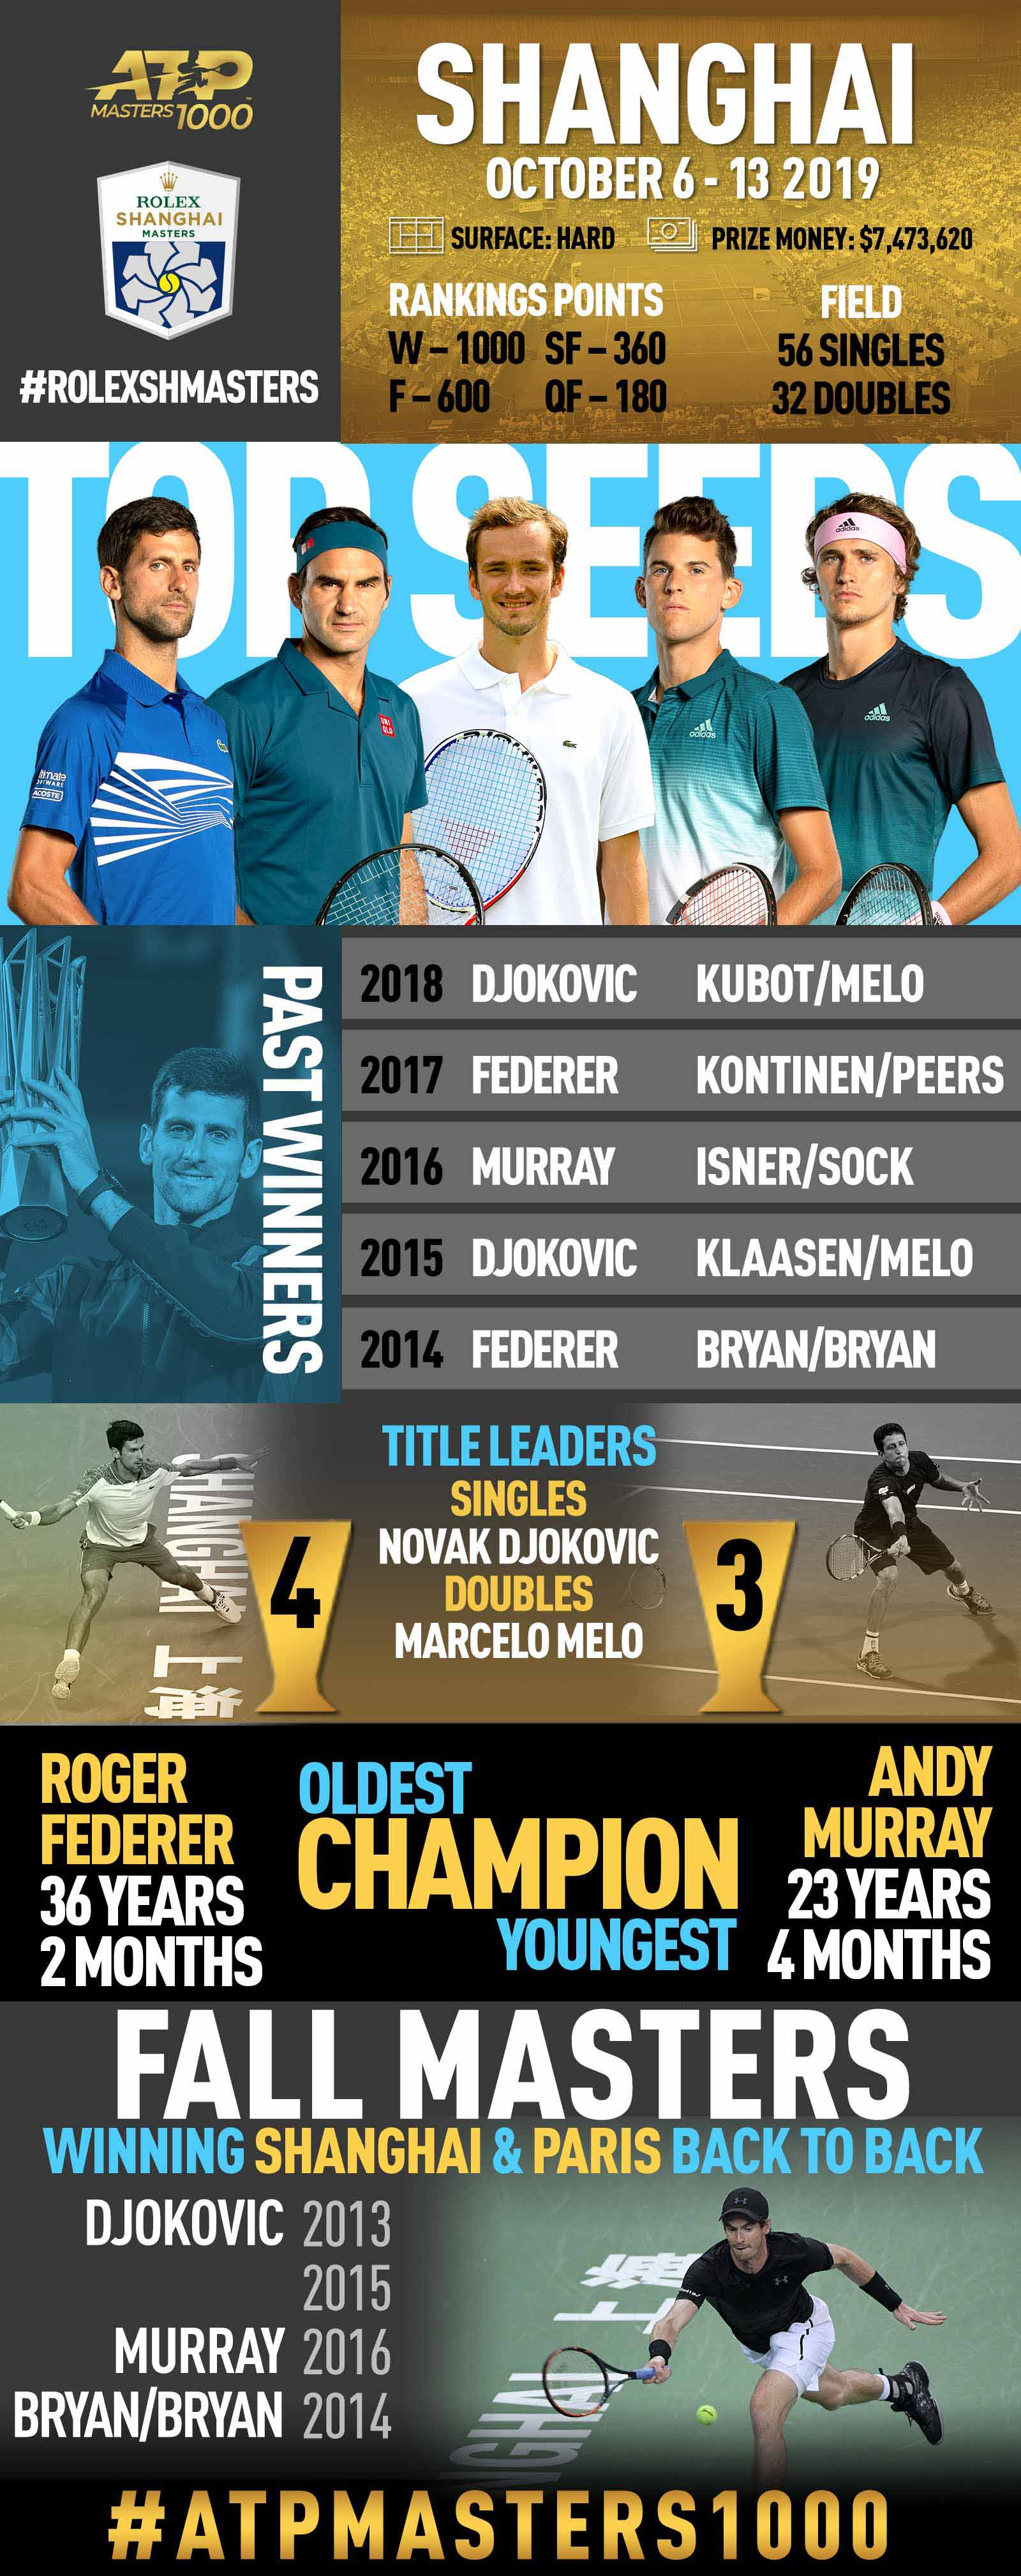 <a href='https://www.atptour.com/en/tournaments/shanghai/5014/overview'>Rolex Shanghai Masters</a>, an ATP Masters 1000 tennis tournament in Shanghai, featuring <a href='https://www.atptour.com/en/players/novak-djokovic/d643/overview'>Novak Djokovic</a>, <a href='https://www.atptour.com/en/players/roger-federer/f324/overview'>Roger Federer</a>, <a href='https://www.atptour.com/en/players/andy-murray/mc10/overview'>Andy Murray</a>